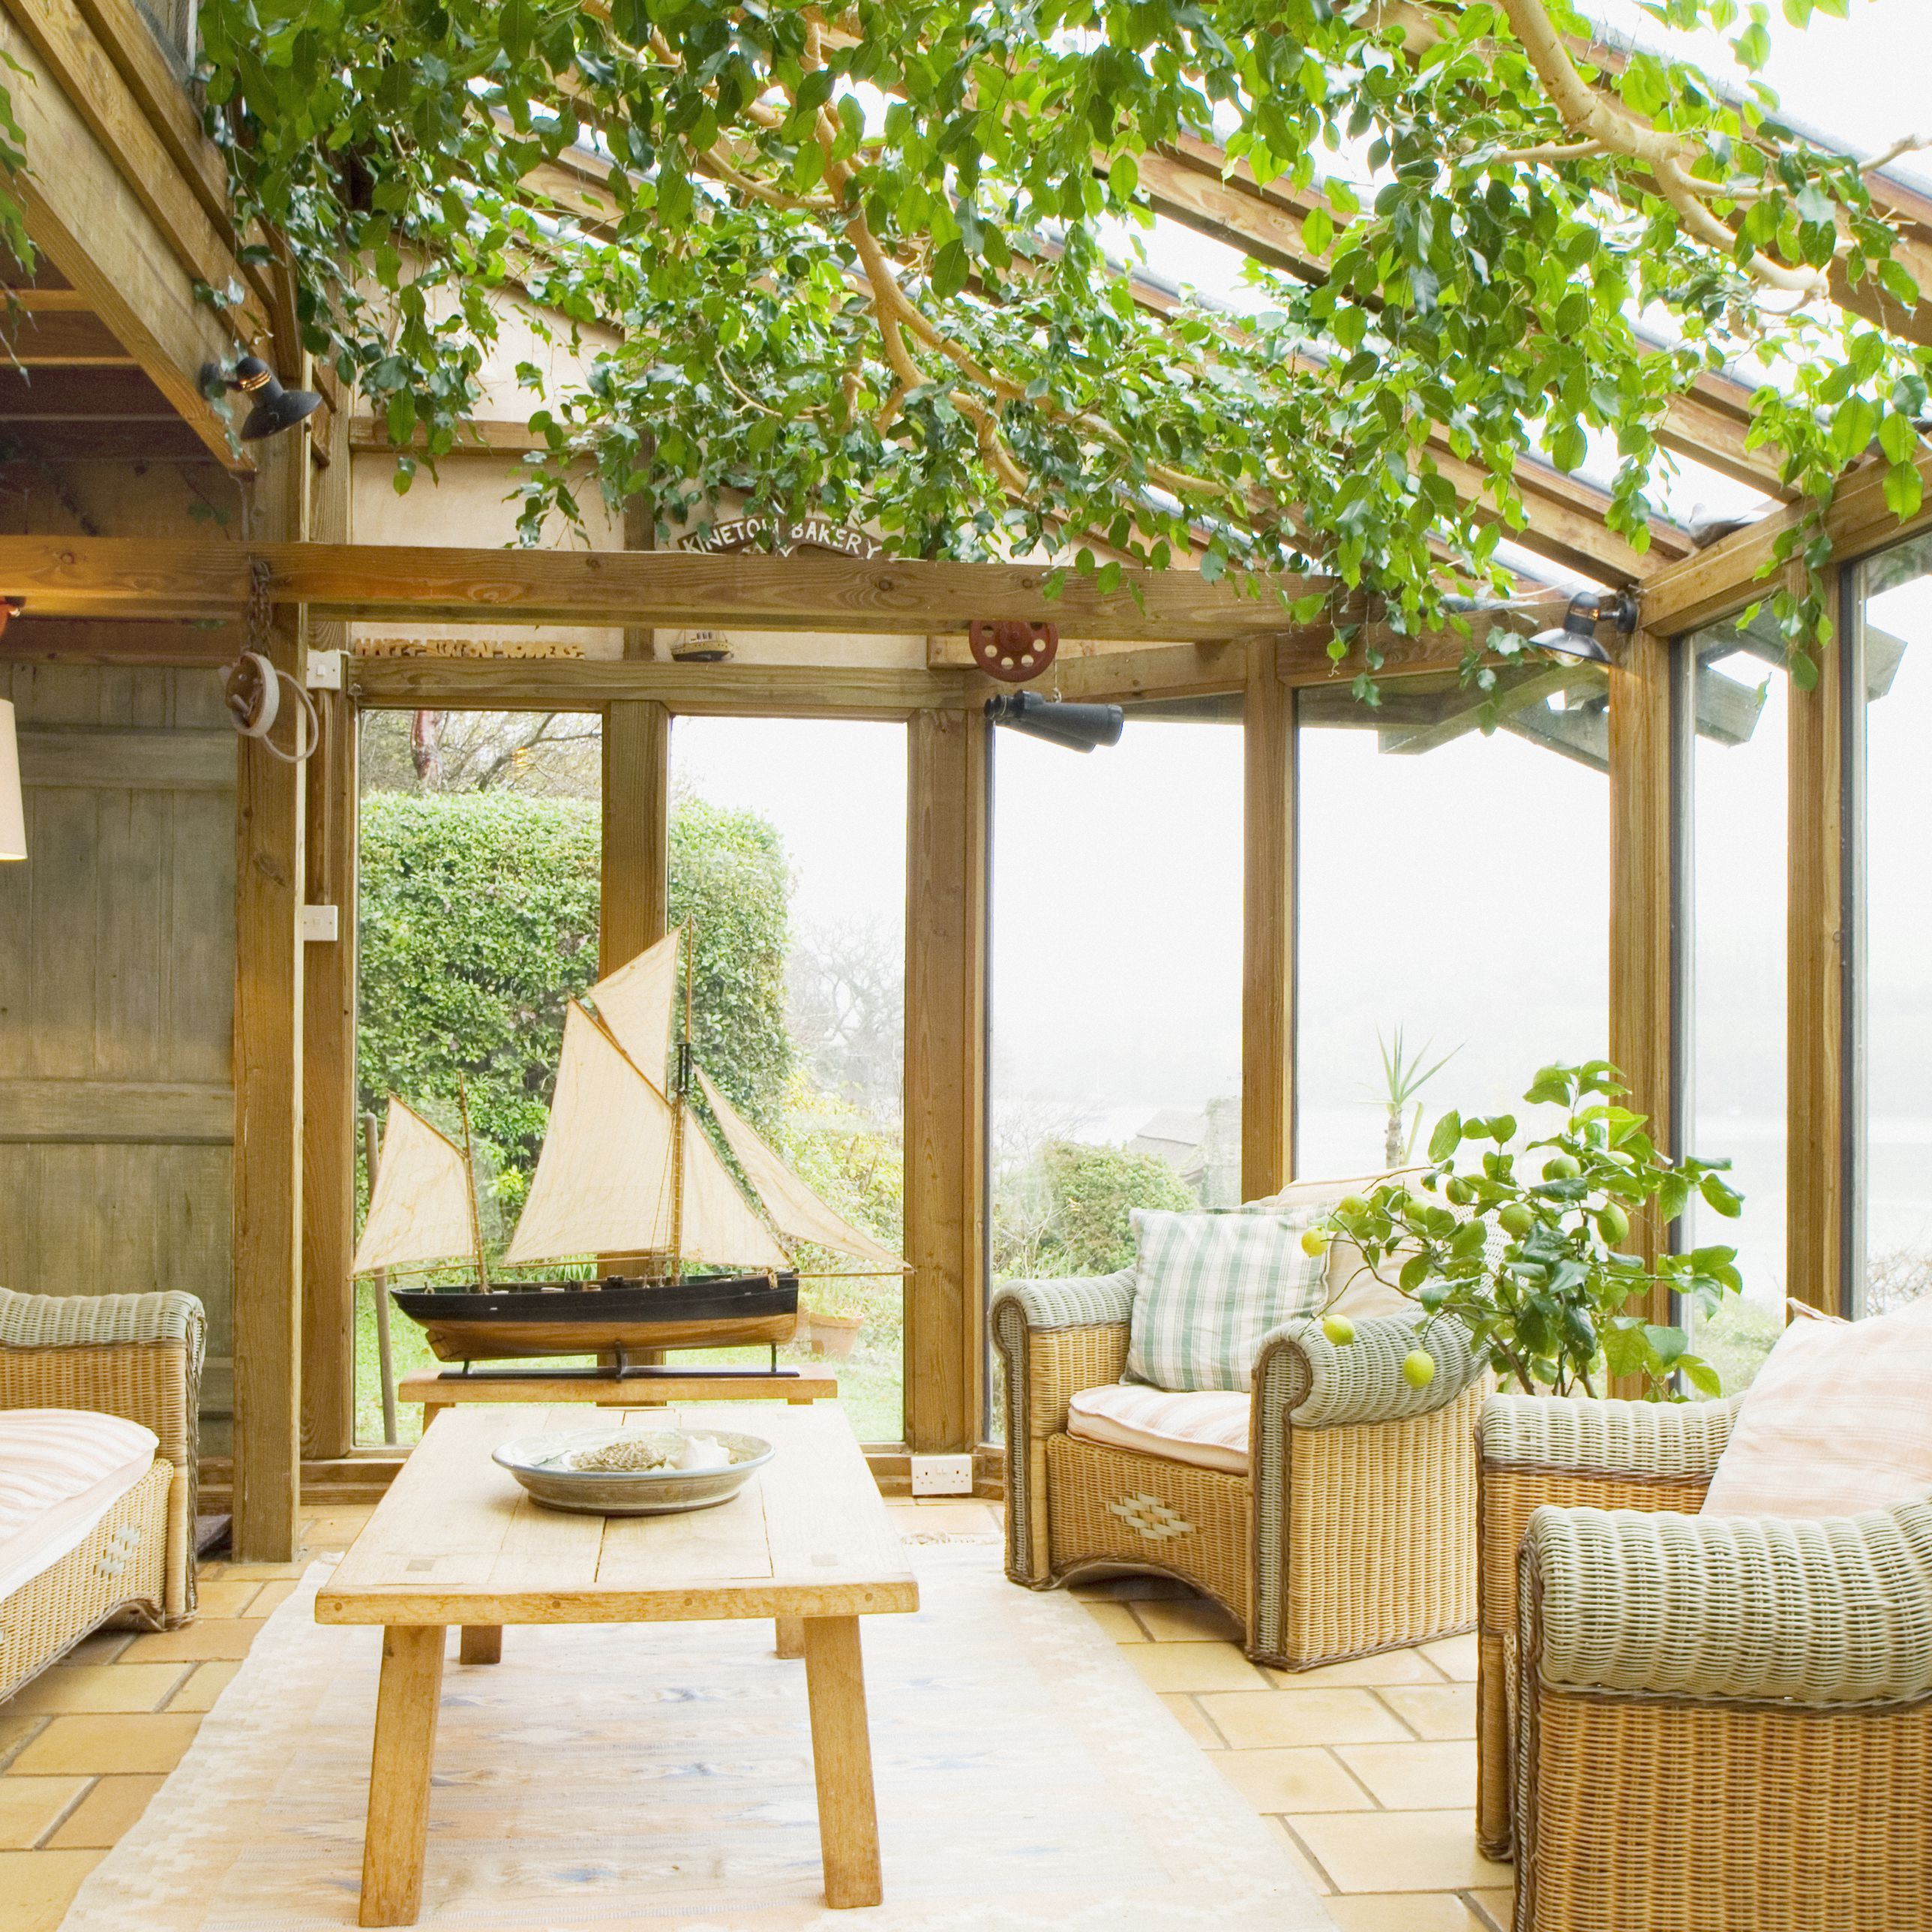 Outdoor Sunroom Ideas: What to Know Before You Build